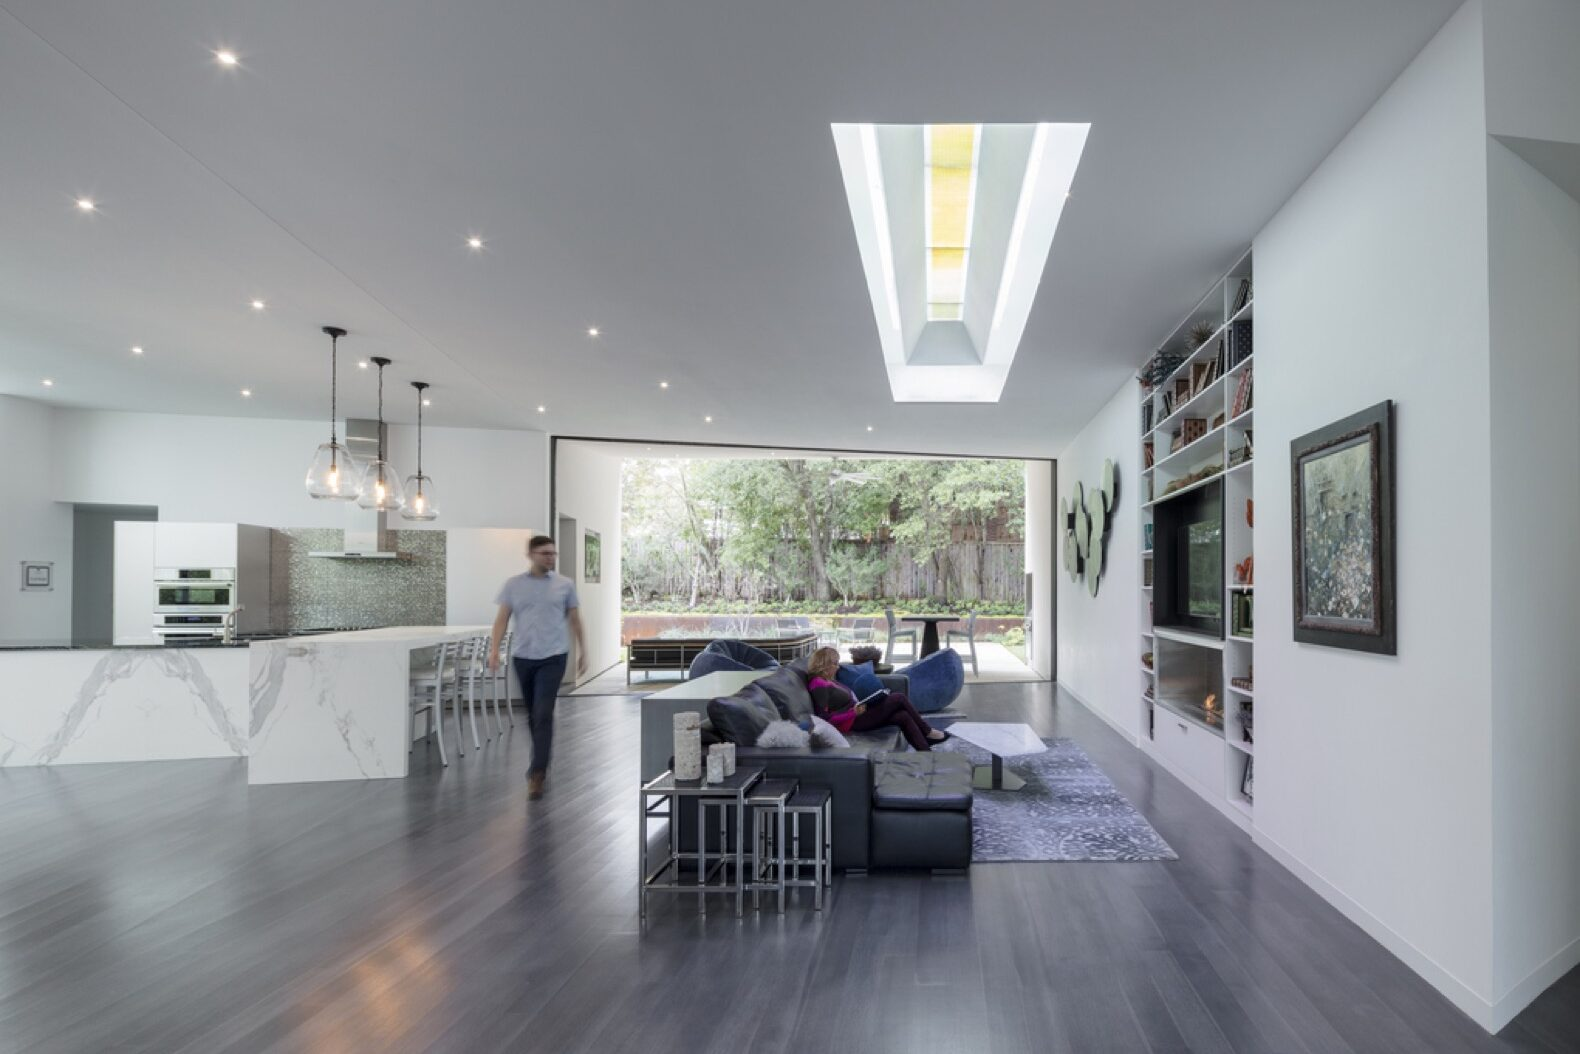 open-plan living area with gray sofa, white kitchen and skylights